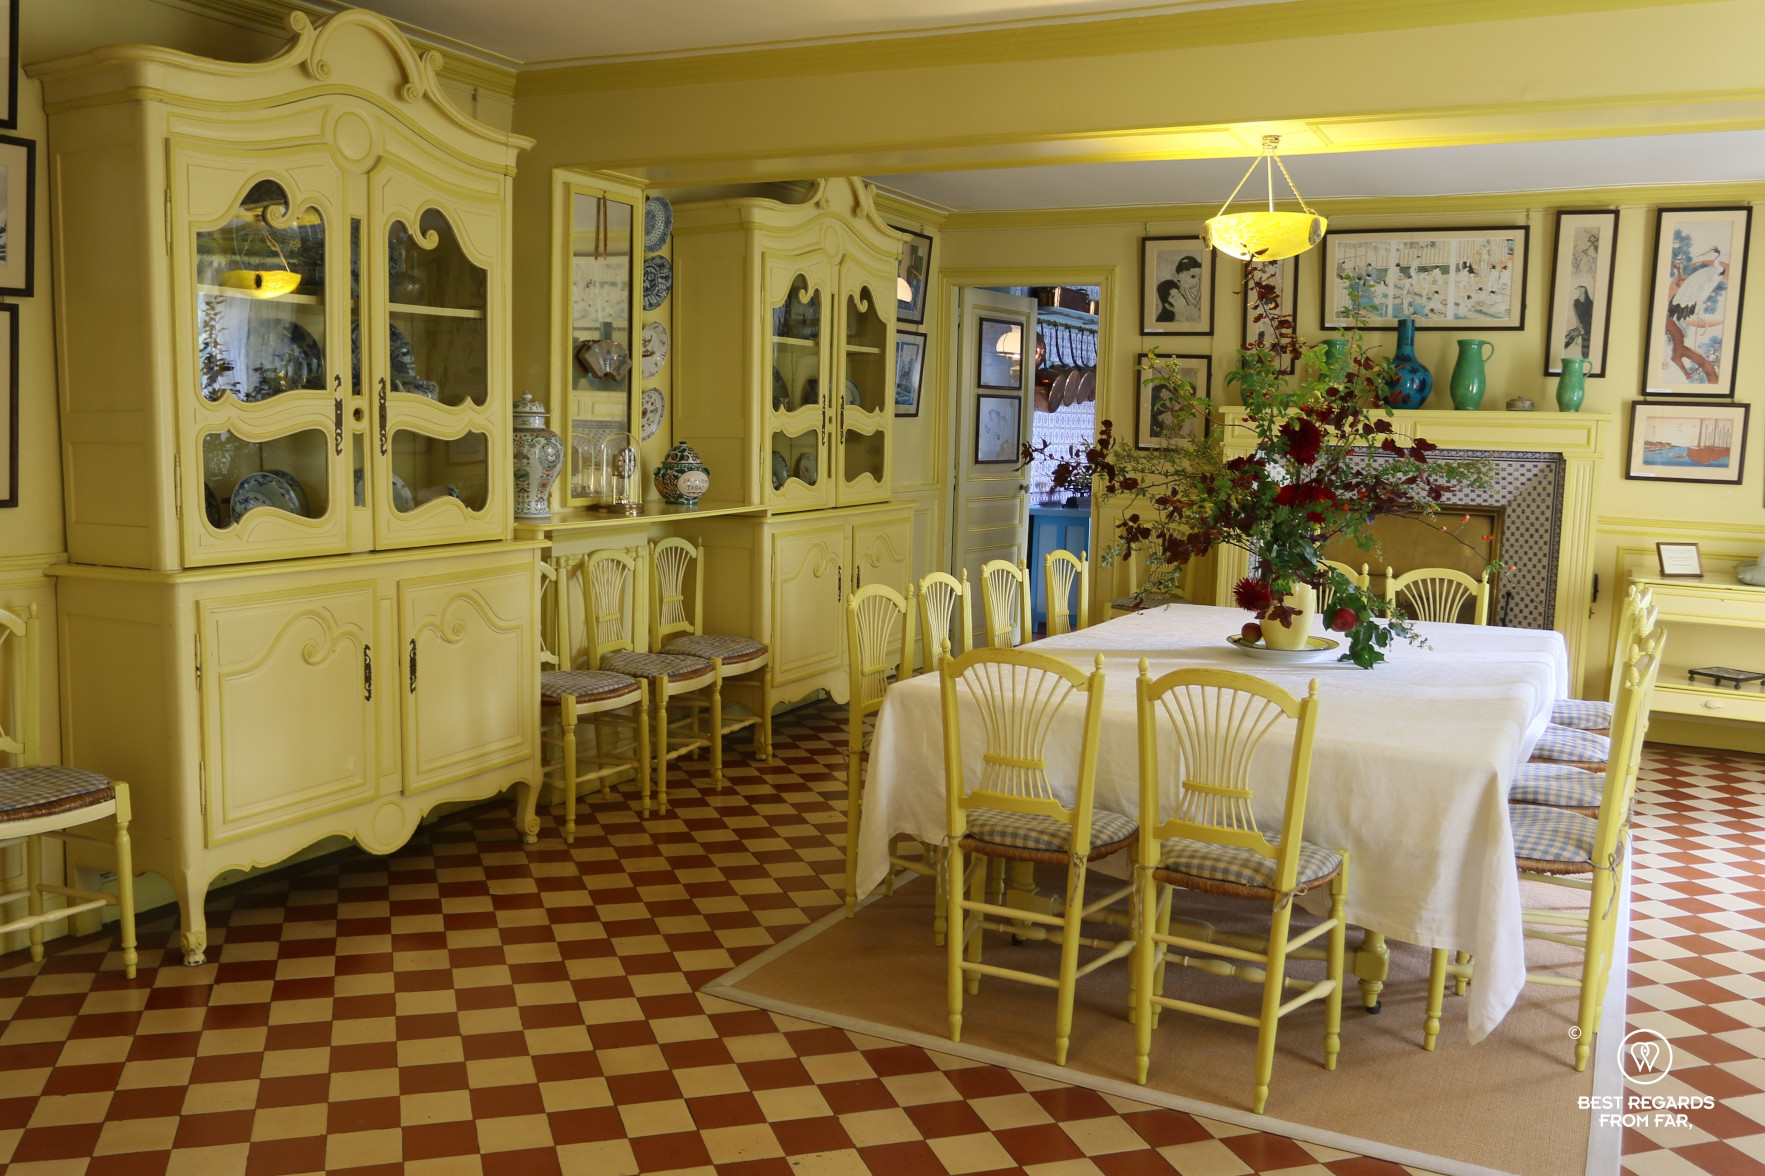 The modern yellow dining room in Claude Monet's house in Giverny, France